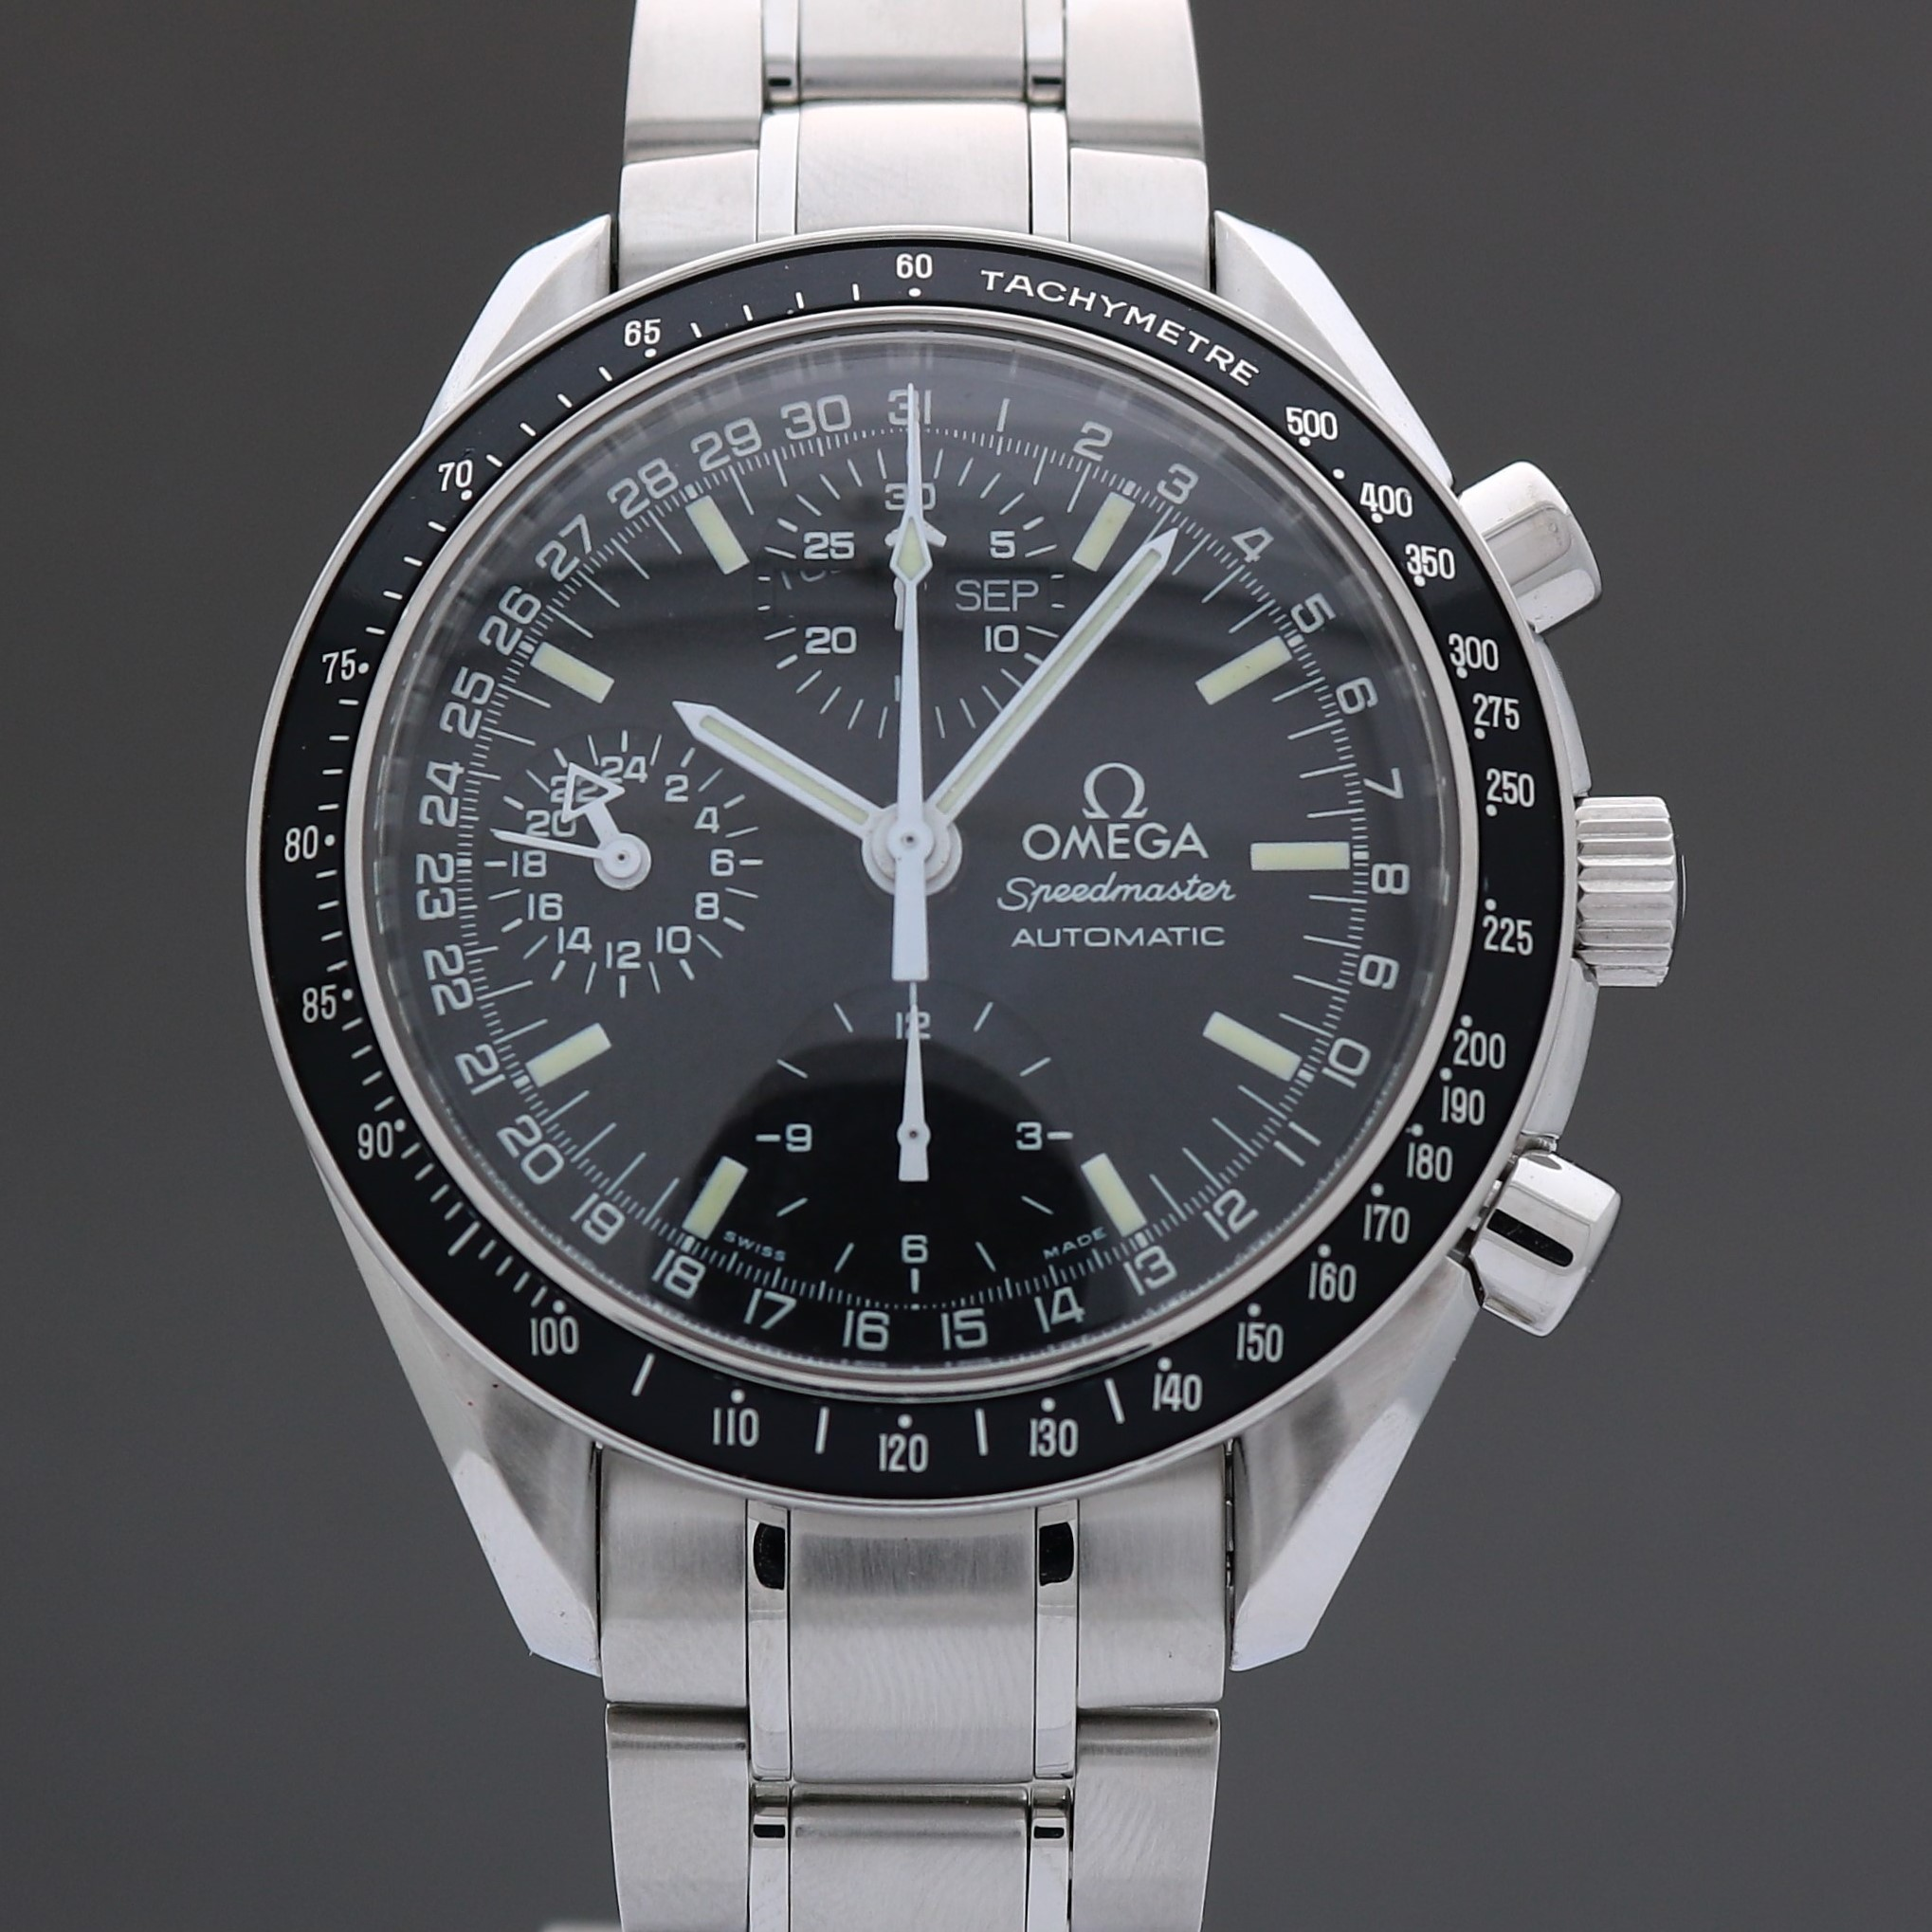 Omega Speedmaster Mark 40 3520.50  39mm Auto